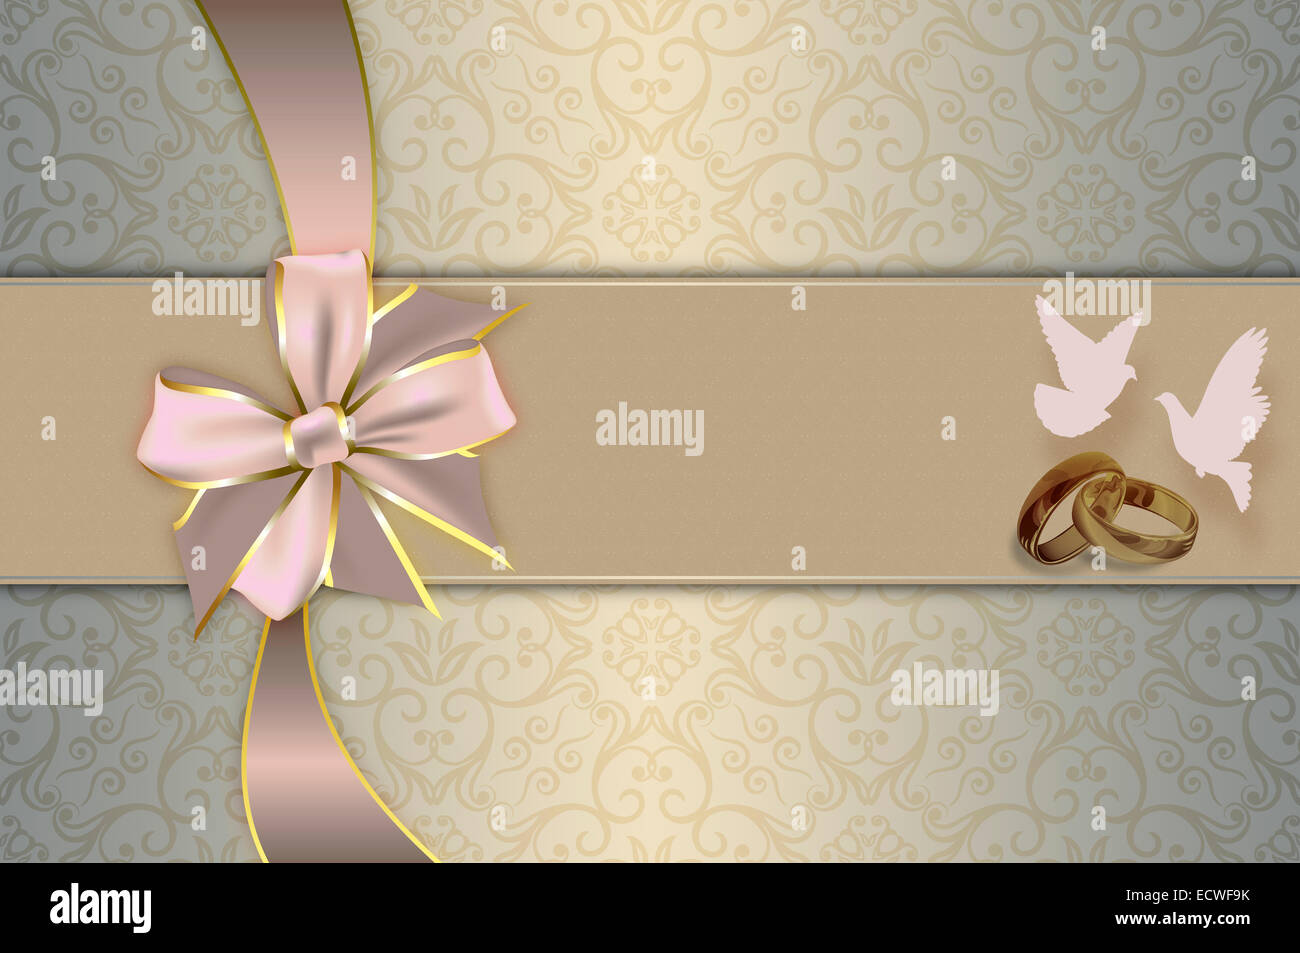 Template Of Wedding Invitation Card With Gold Rings And White Doves